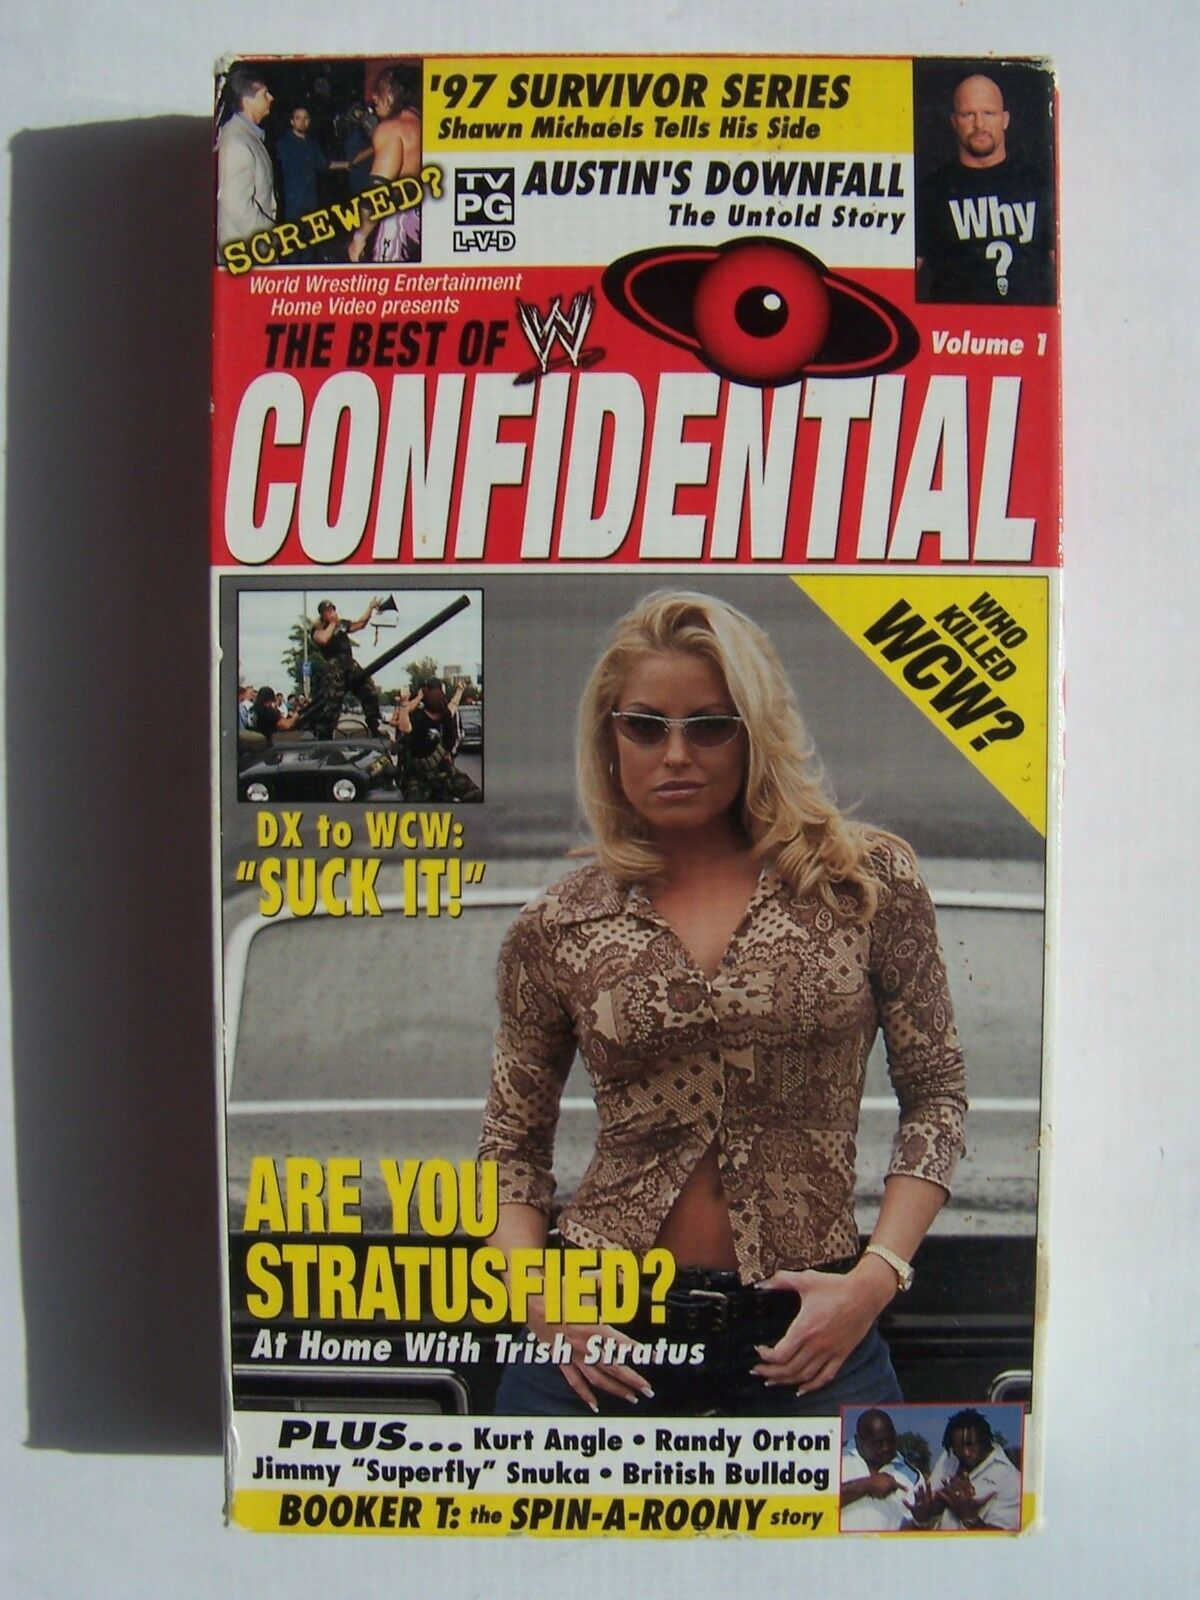 The Best of WWE Confidential Vol 1 VHS Video Tape Trish